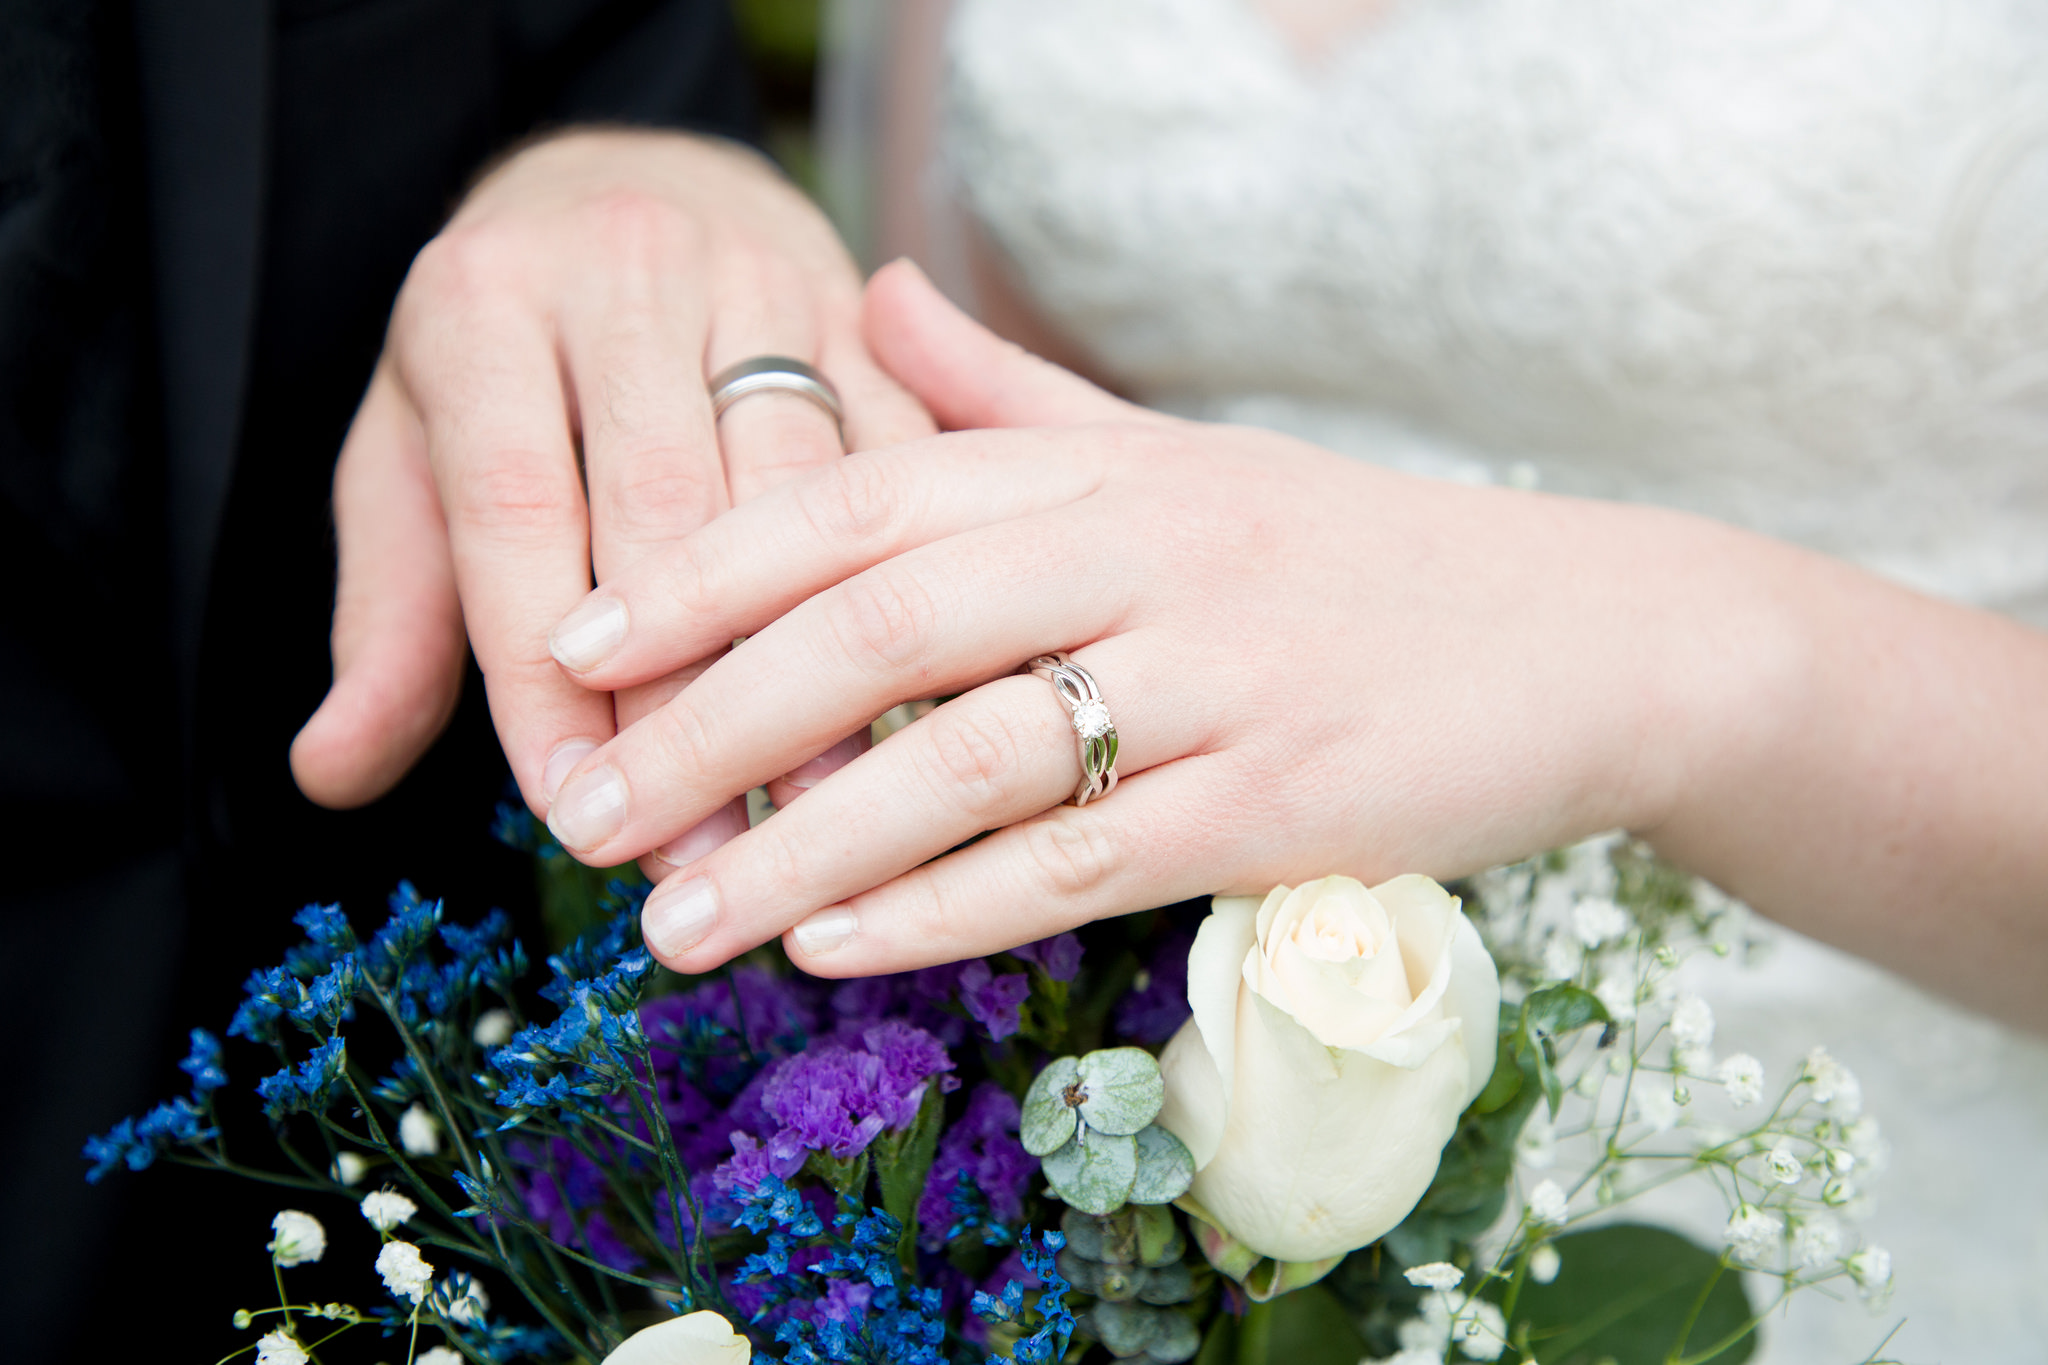 bride and groom hands wedding rings flowers coordinator philadelphia pennsylvania.jpg